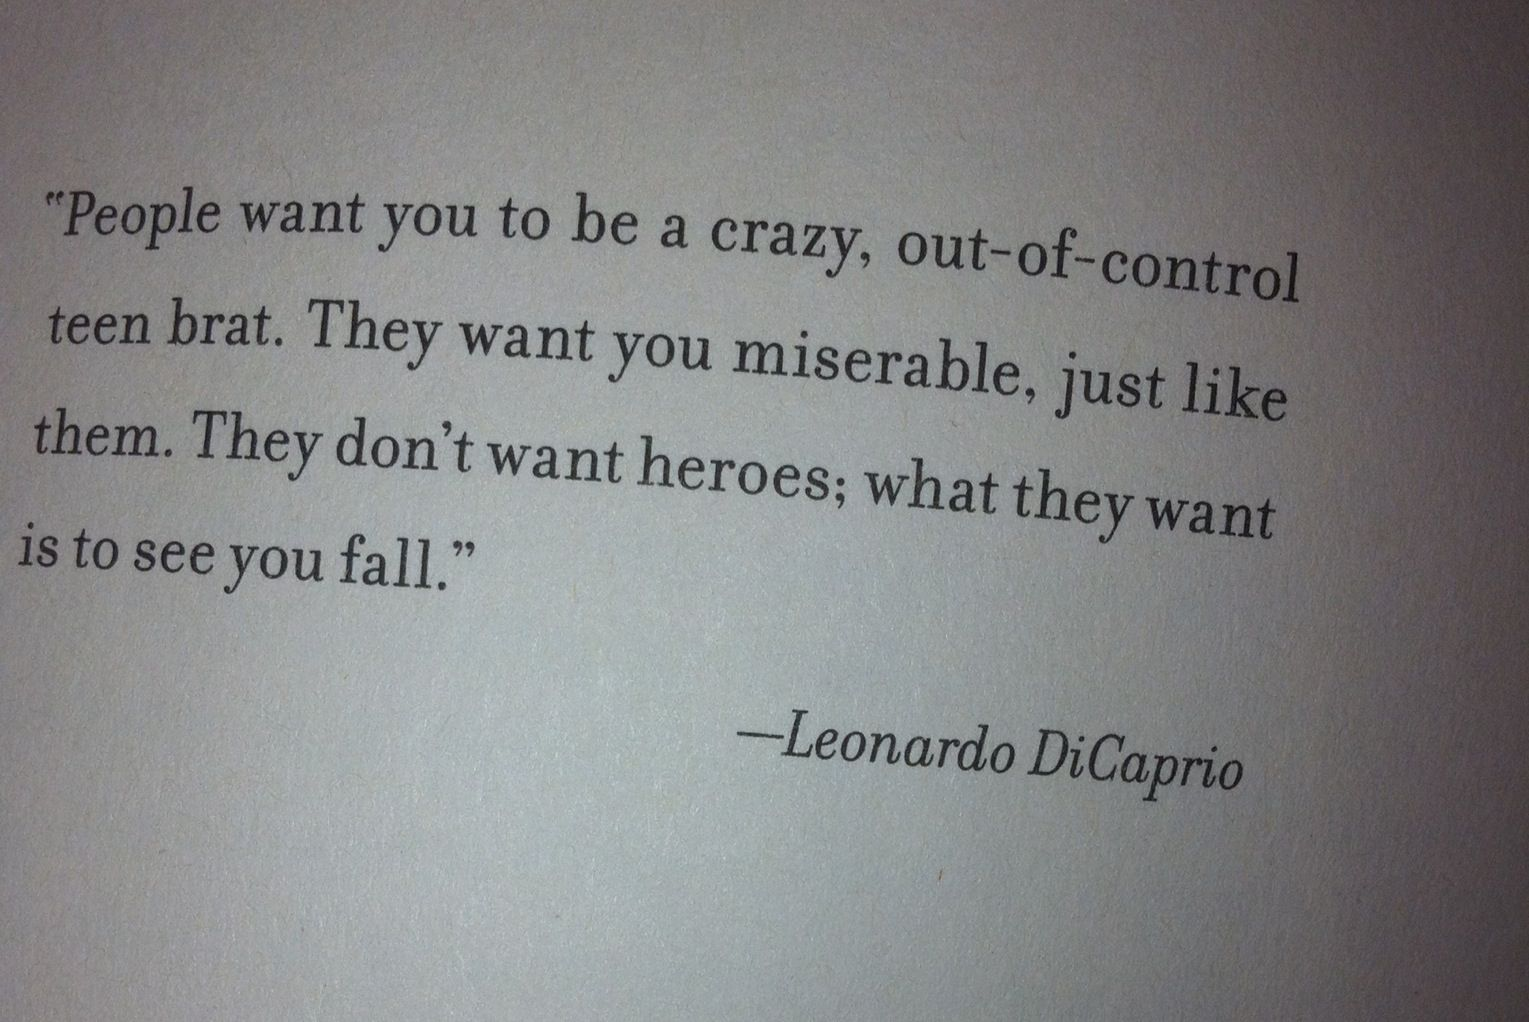 """""""People want you to be crazy, out-of-control teen brat. They want you miserable, just like them. They don't want heroes; what they want is to see you fall"""" ~Leonardo DiCaprio"""